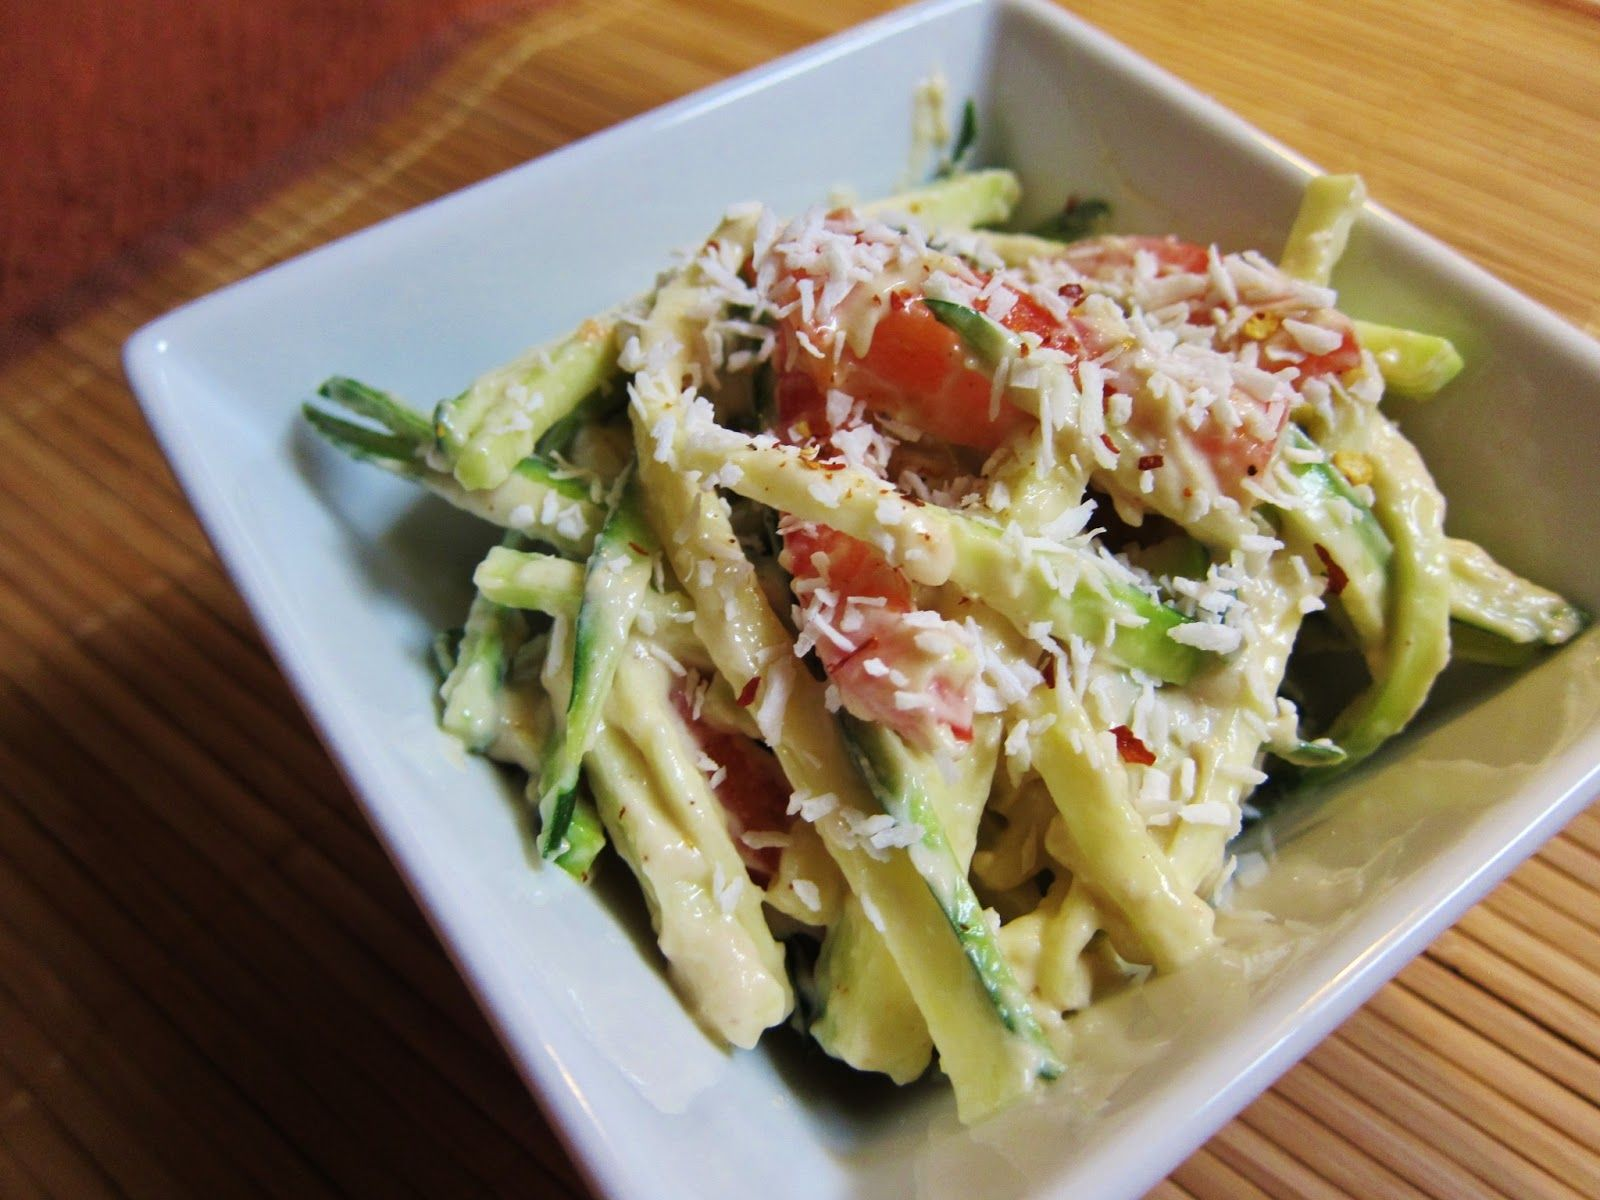 Smart health talk top pick raw thai chili coconut zucchini noodles smart health talk top pick raw thai chili coconut zucchini noodles if you going to try and eat more raw foods you want flavor to replace the meat forumfinder Image collections